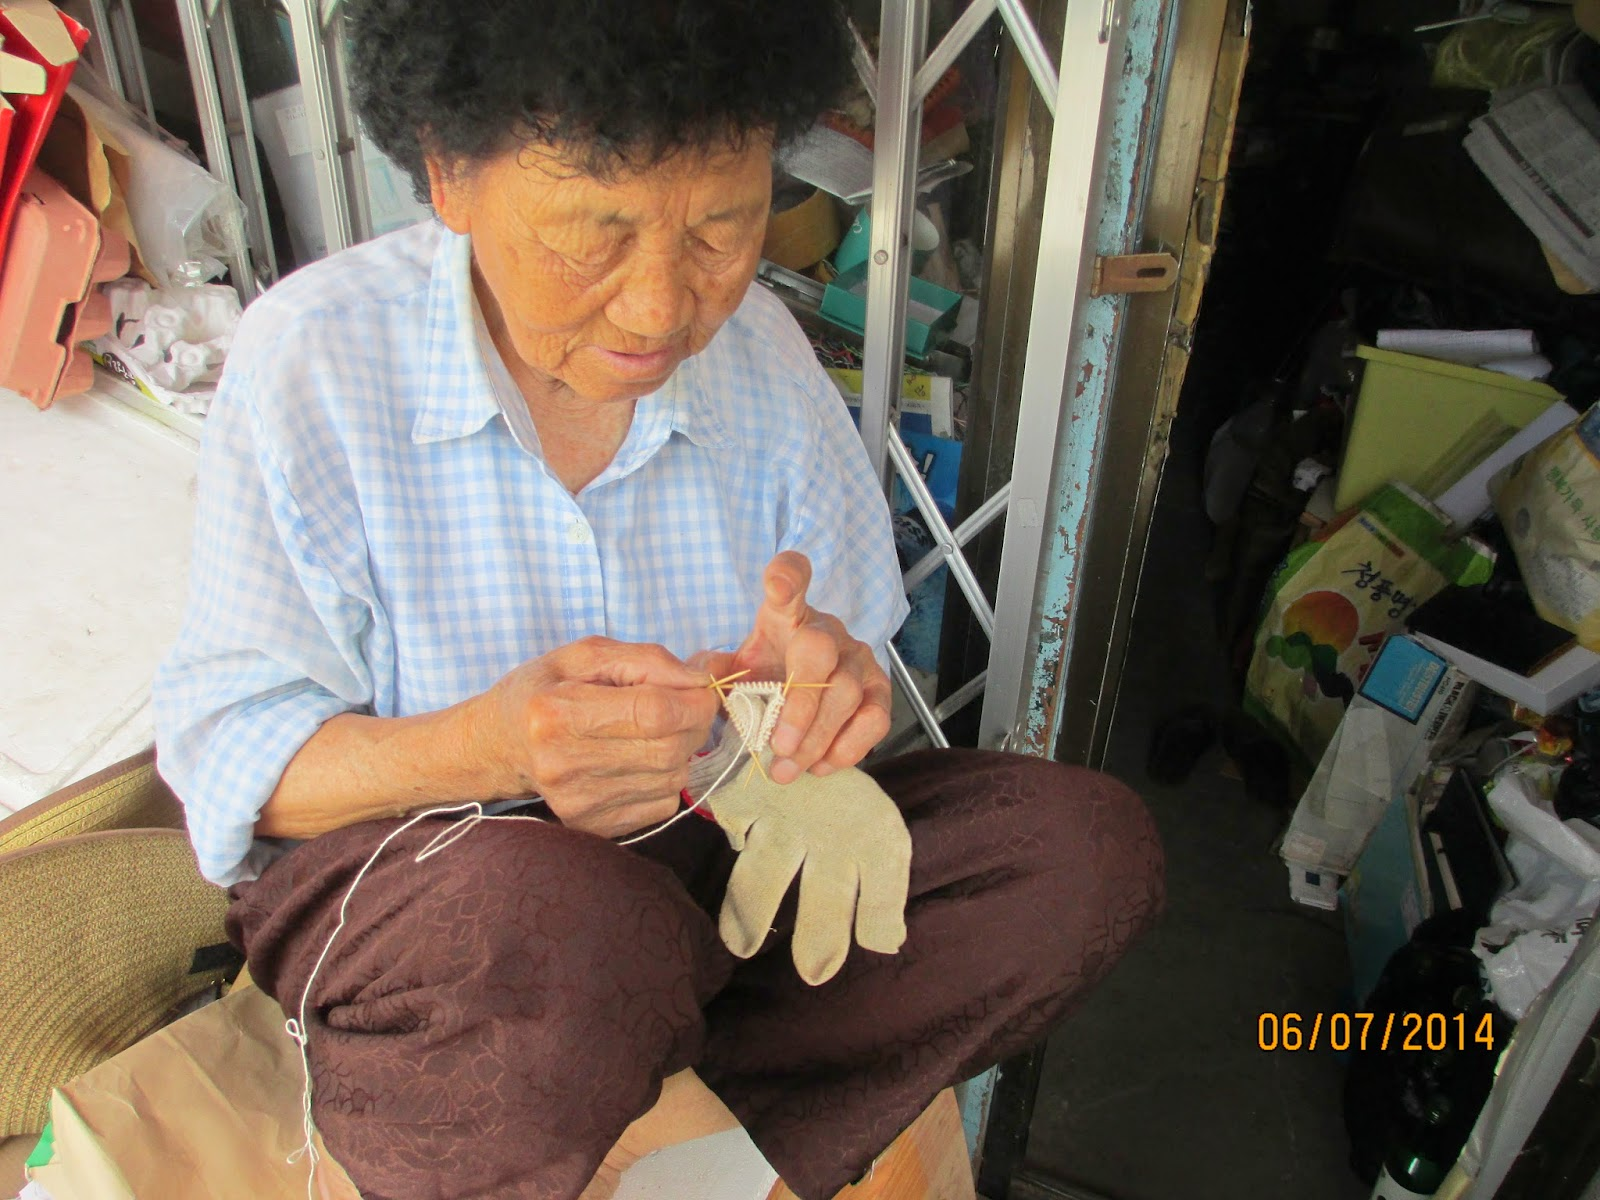 The grandma who lives right outside our church. She was sewing a glove back together with toothpicks! So cool! :)